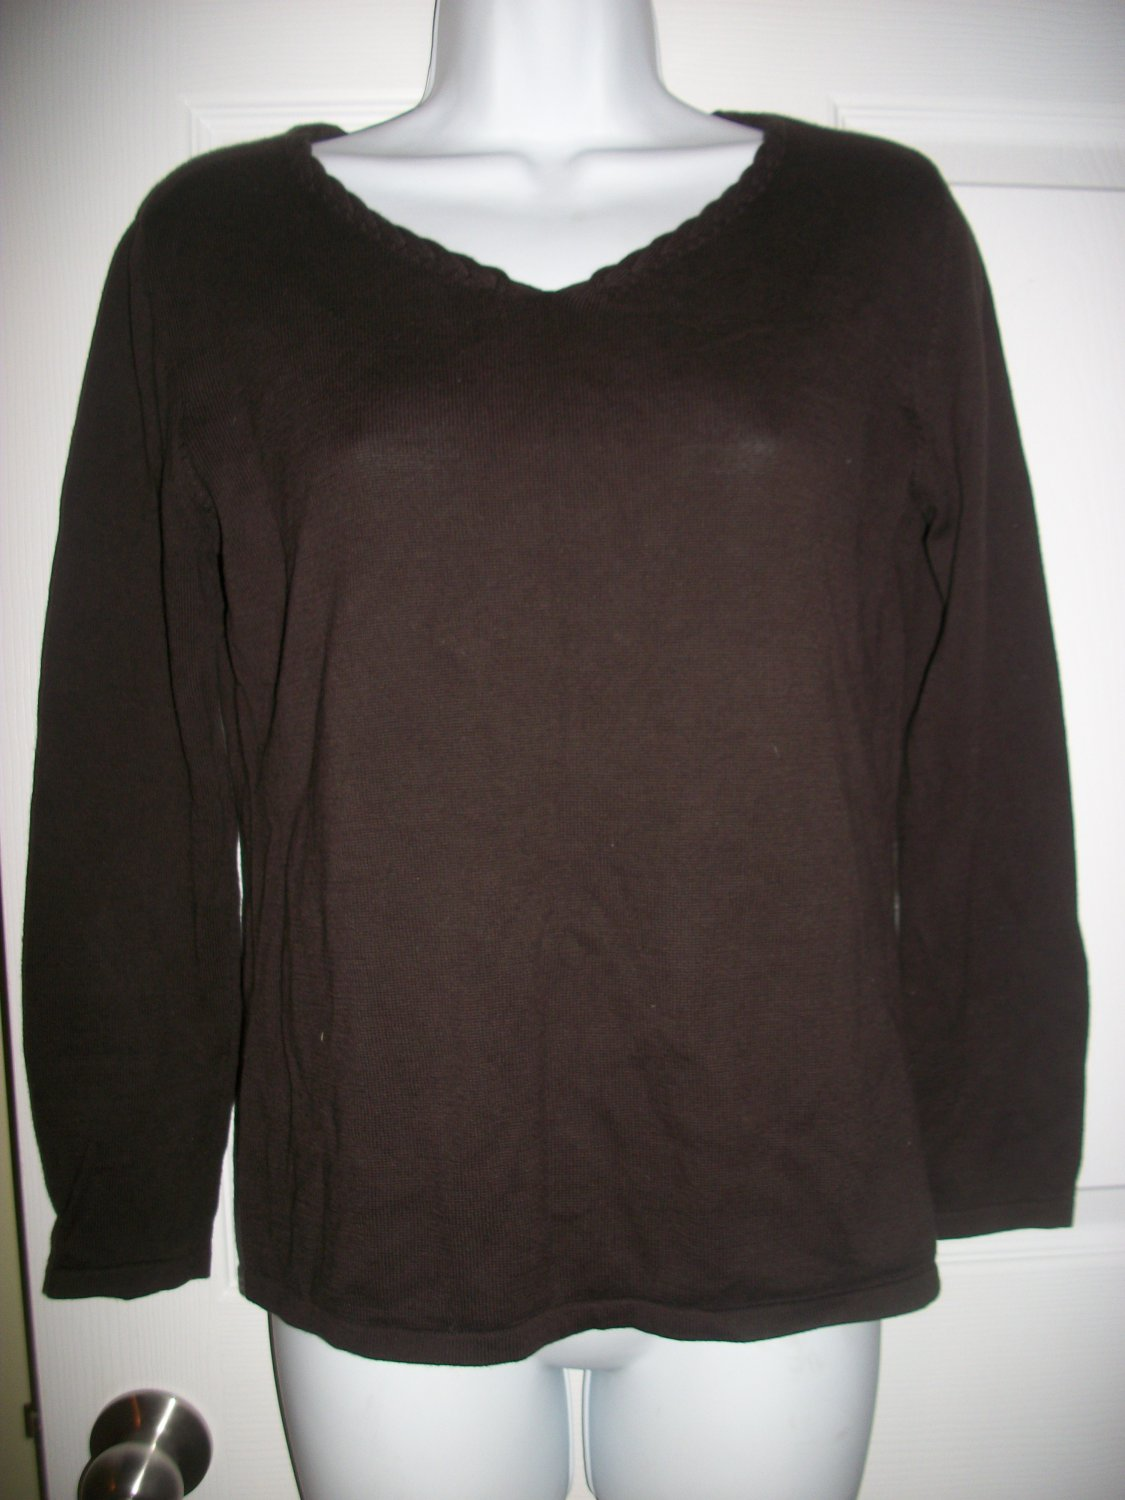 J.. Jill Women's Brown Lightweight Sweater Size S